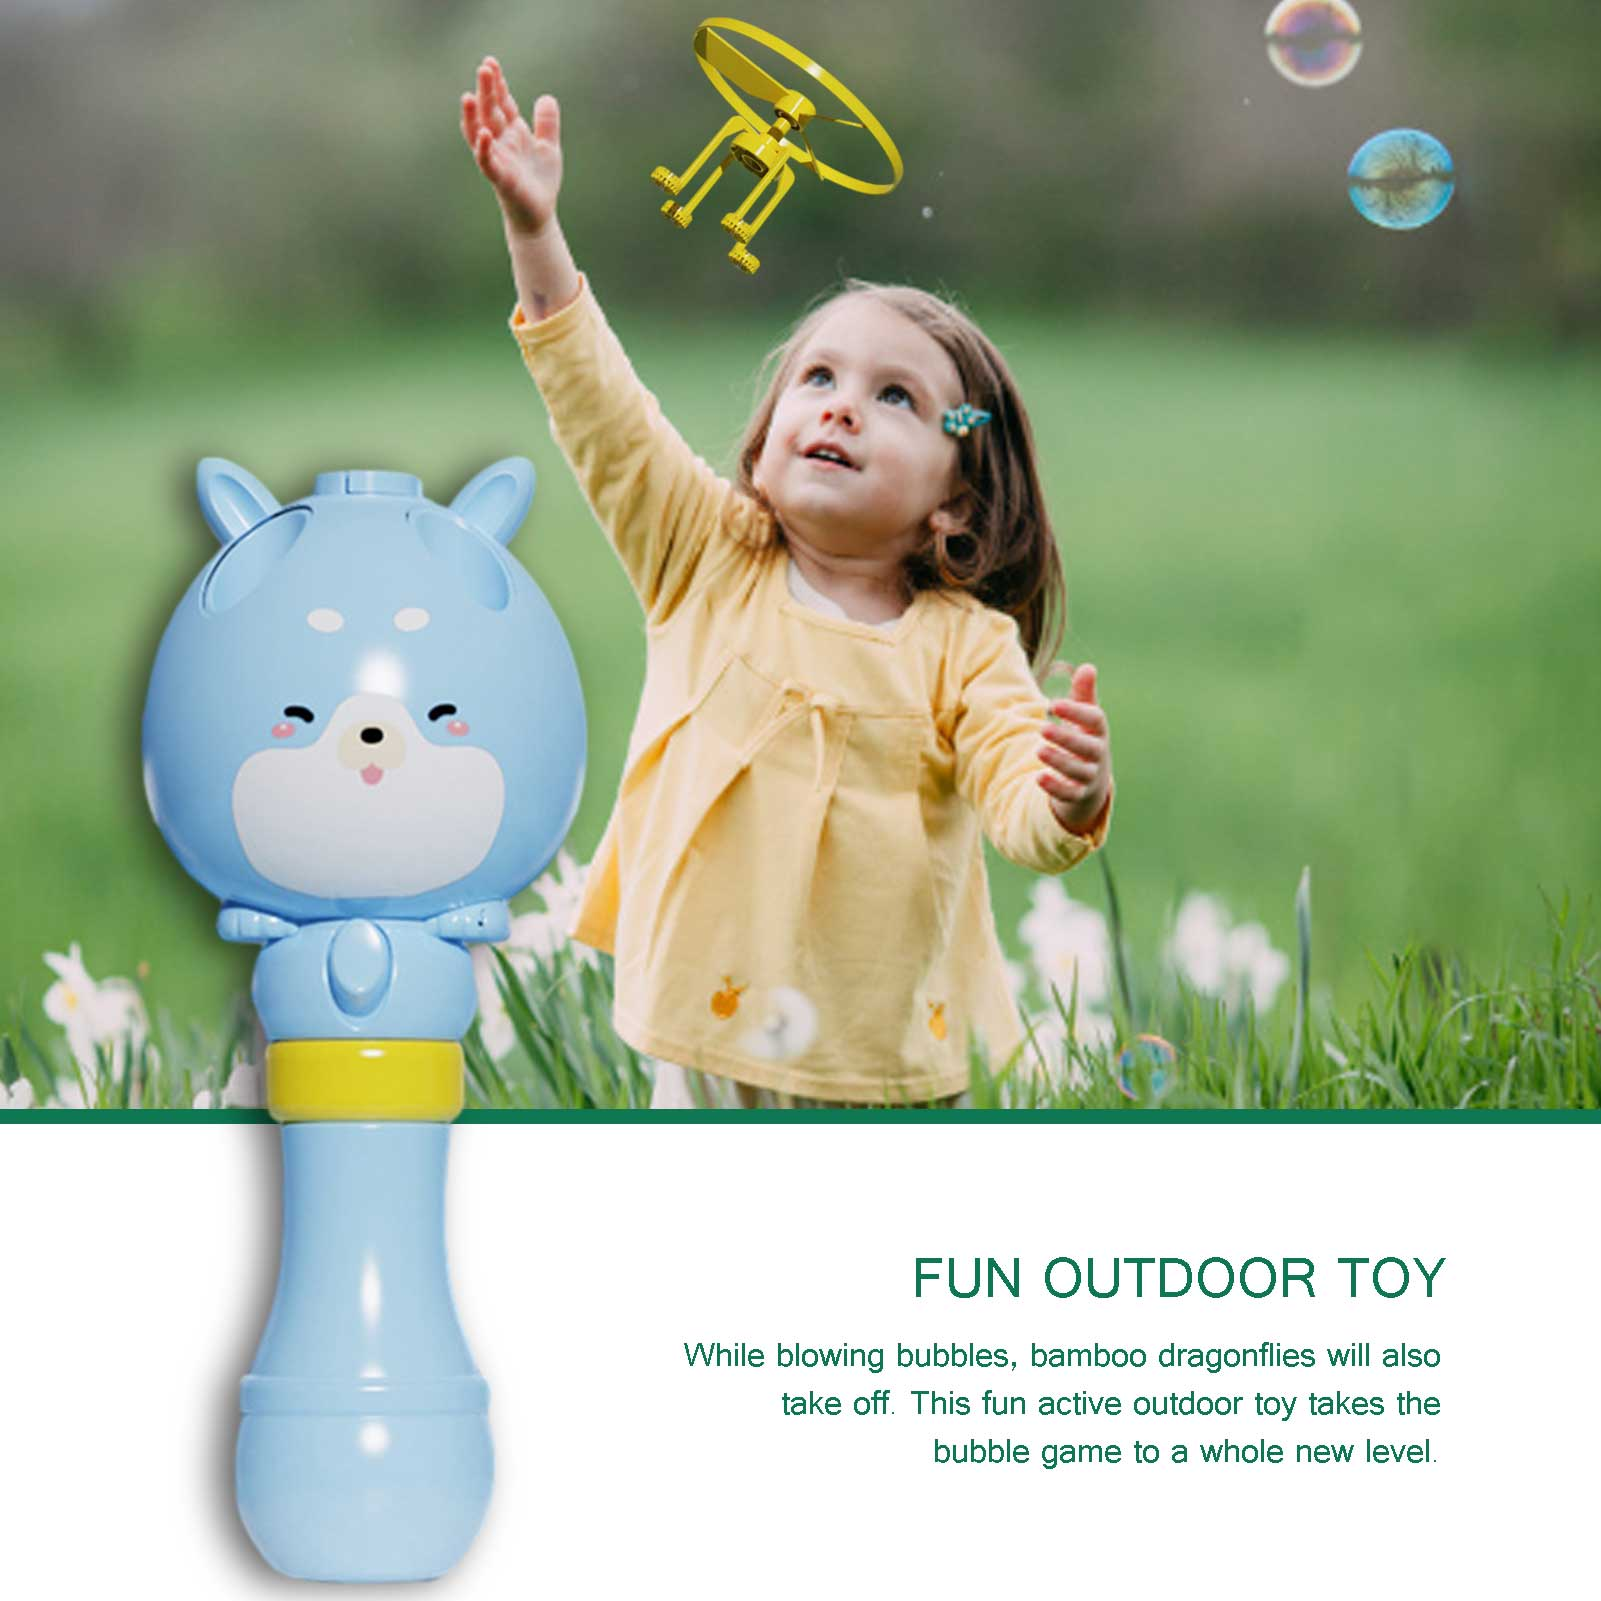 Bamboo Dragonfly Water Bubble Machine【50%OFF】